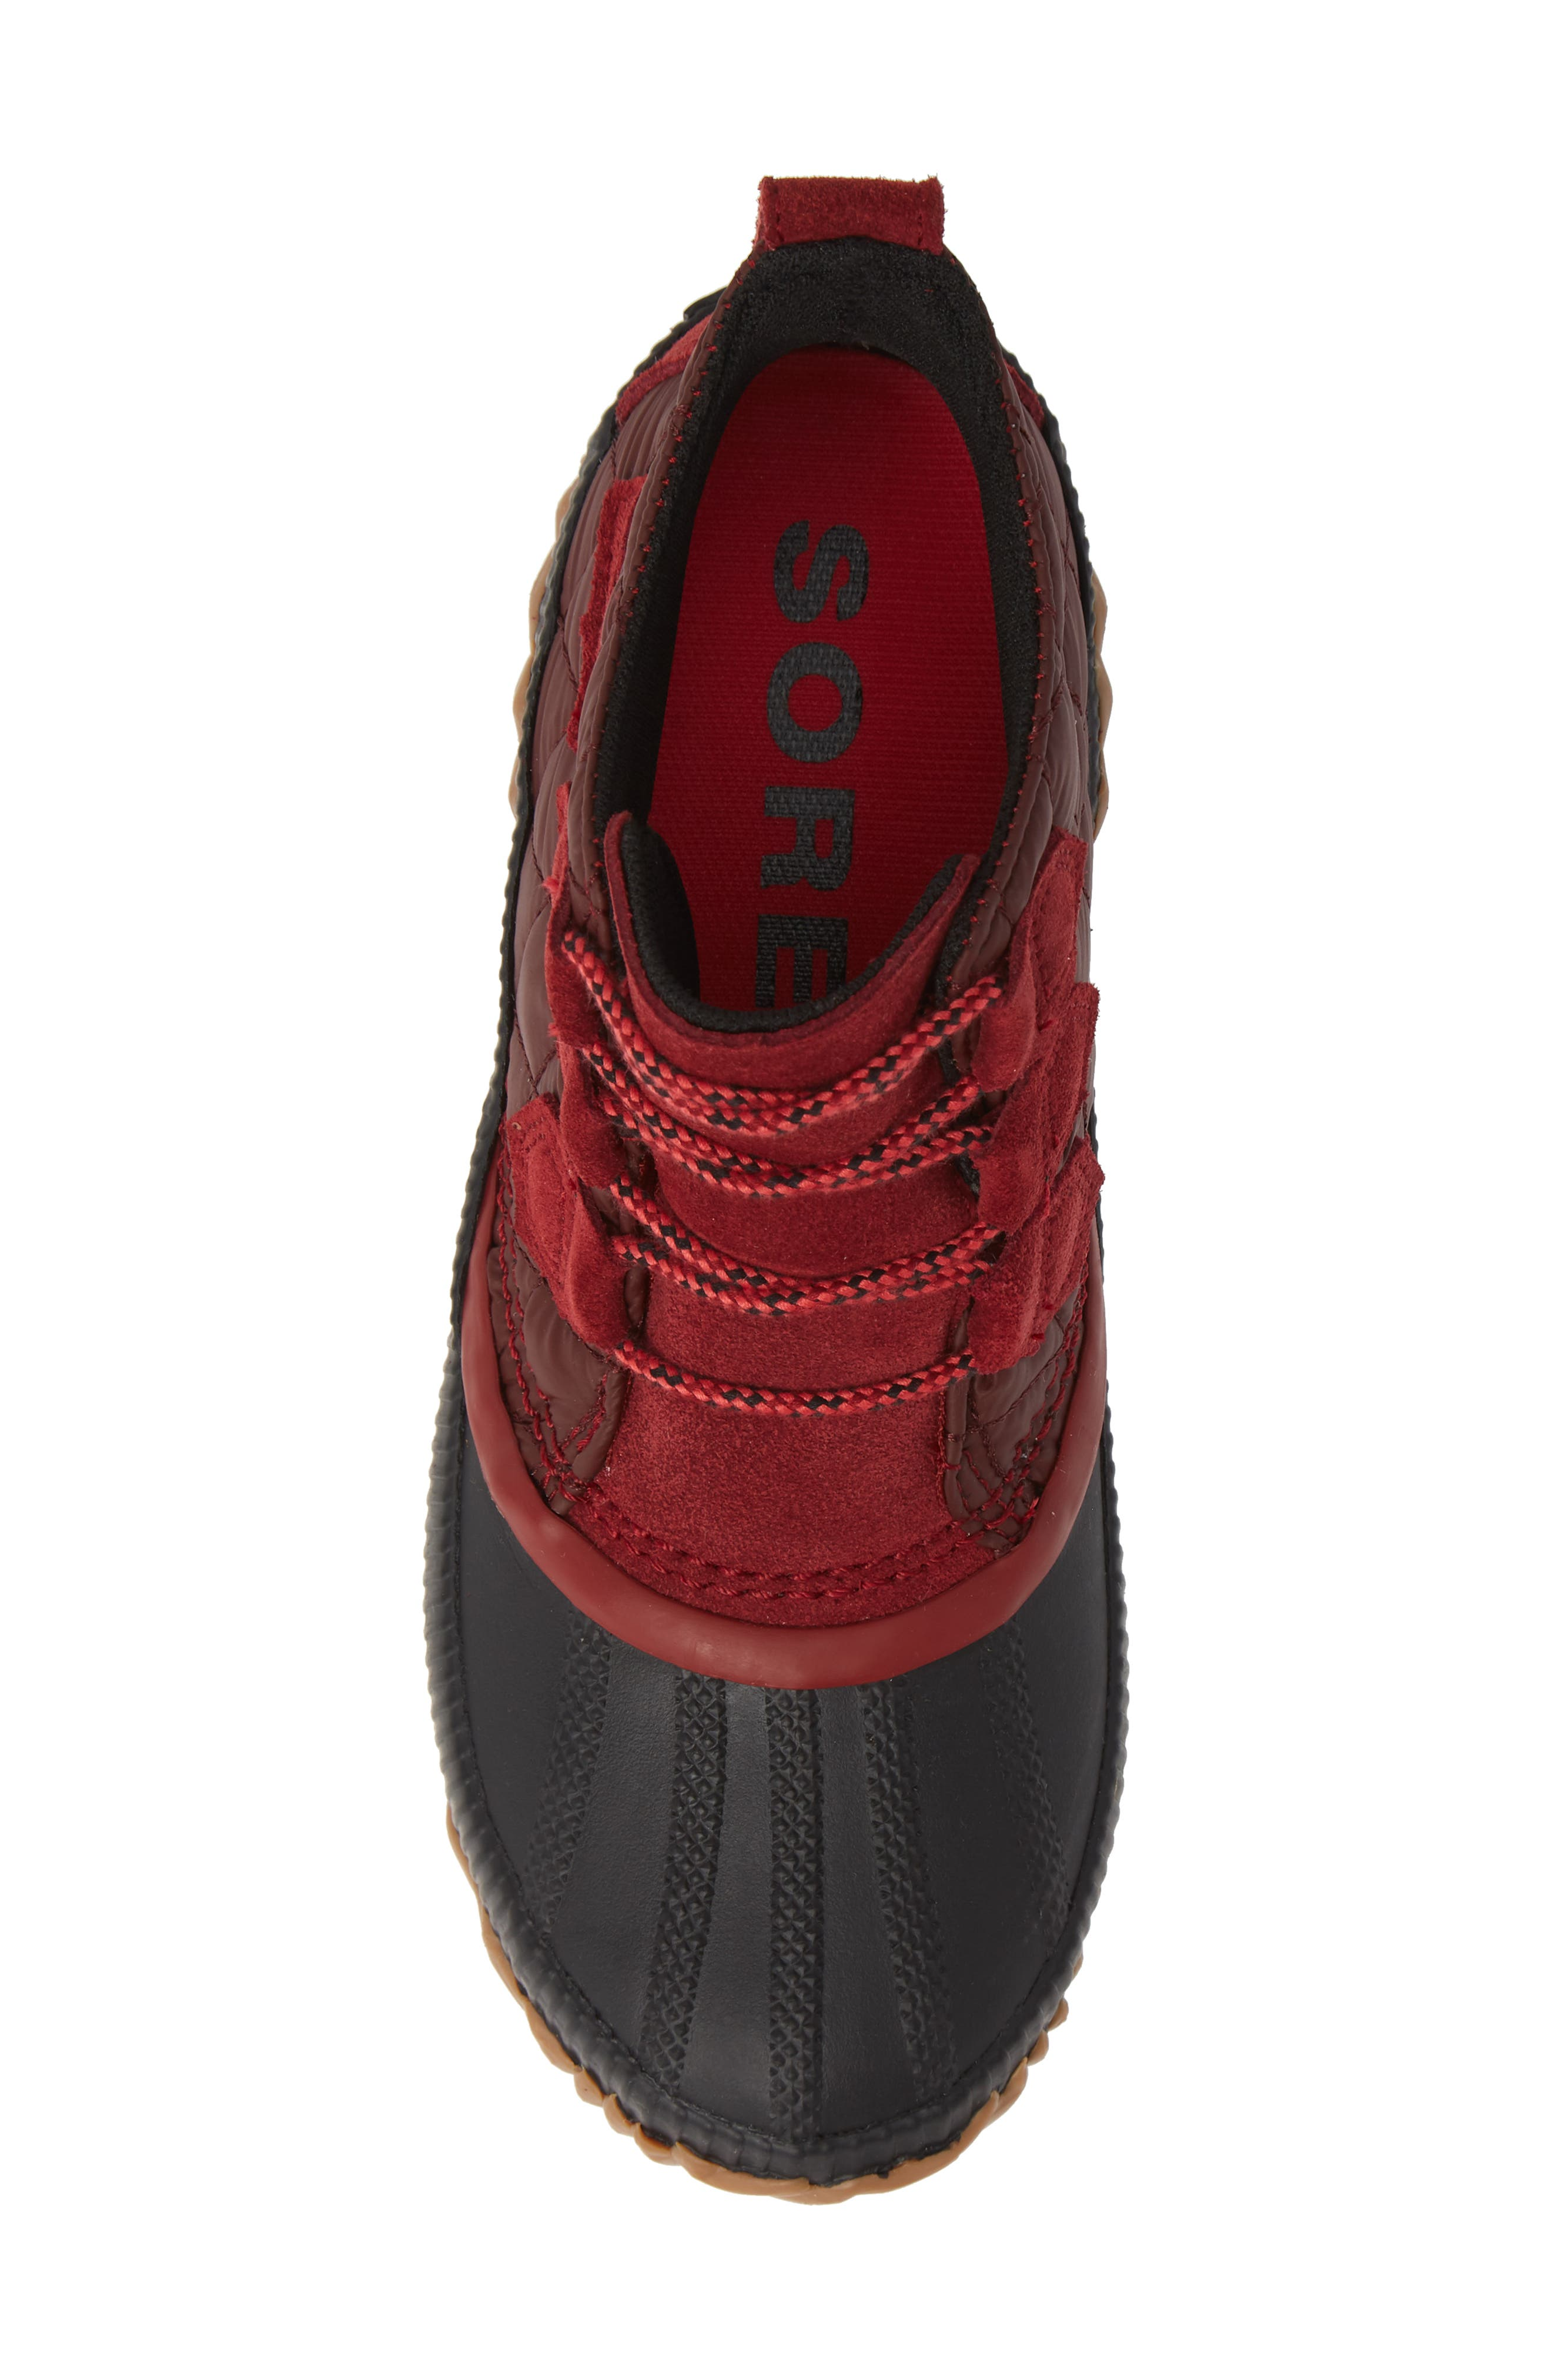 Out 'N' About Plus Camp Waterproof Bootie,                             Alternate thumbnail 5, color,                             CAMP/ RED ELEMENT